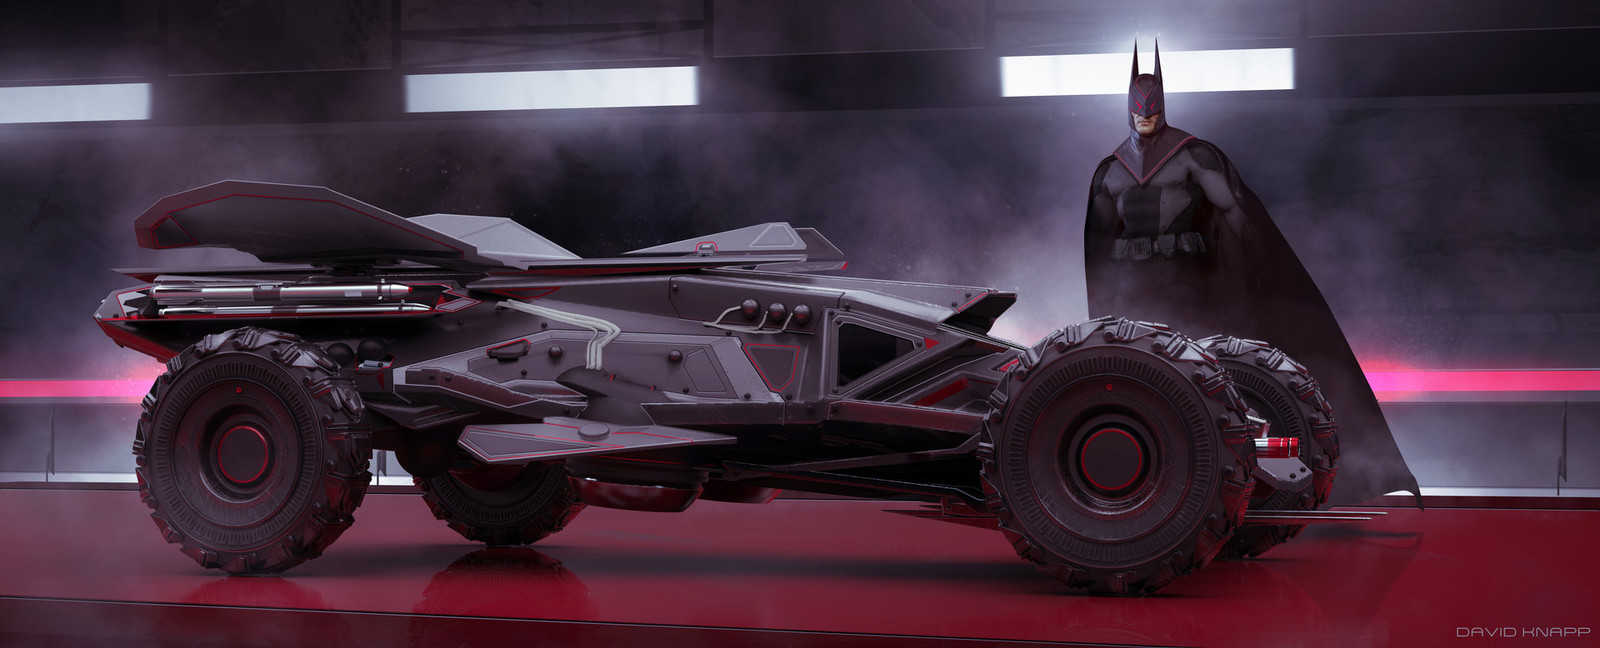 Lightweight Batmobile Concept